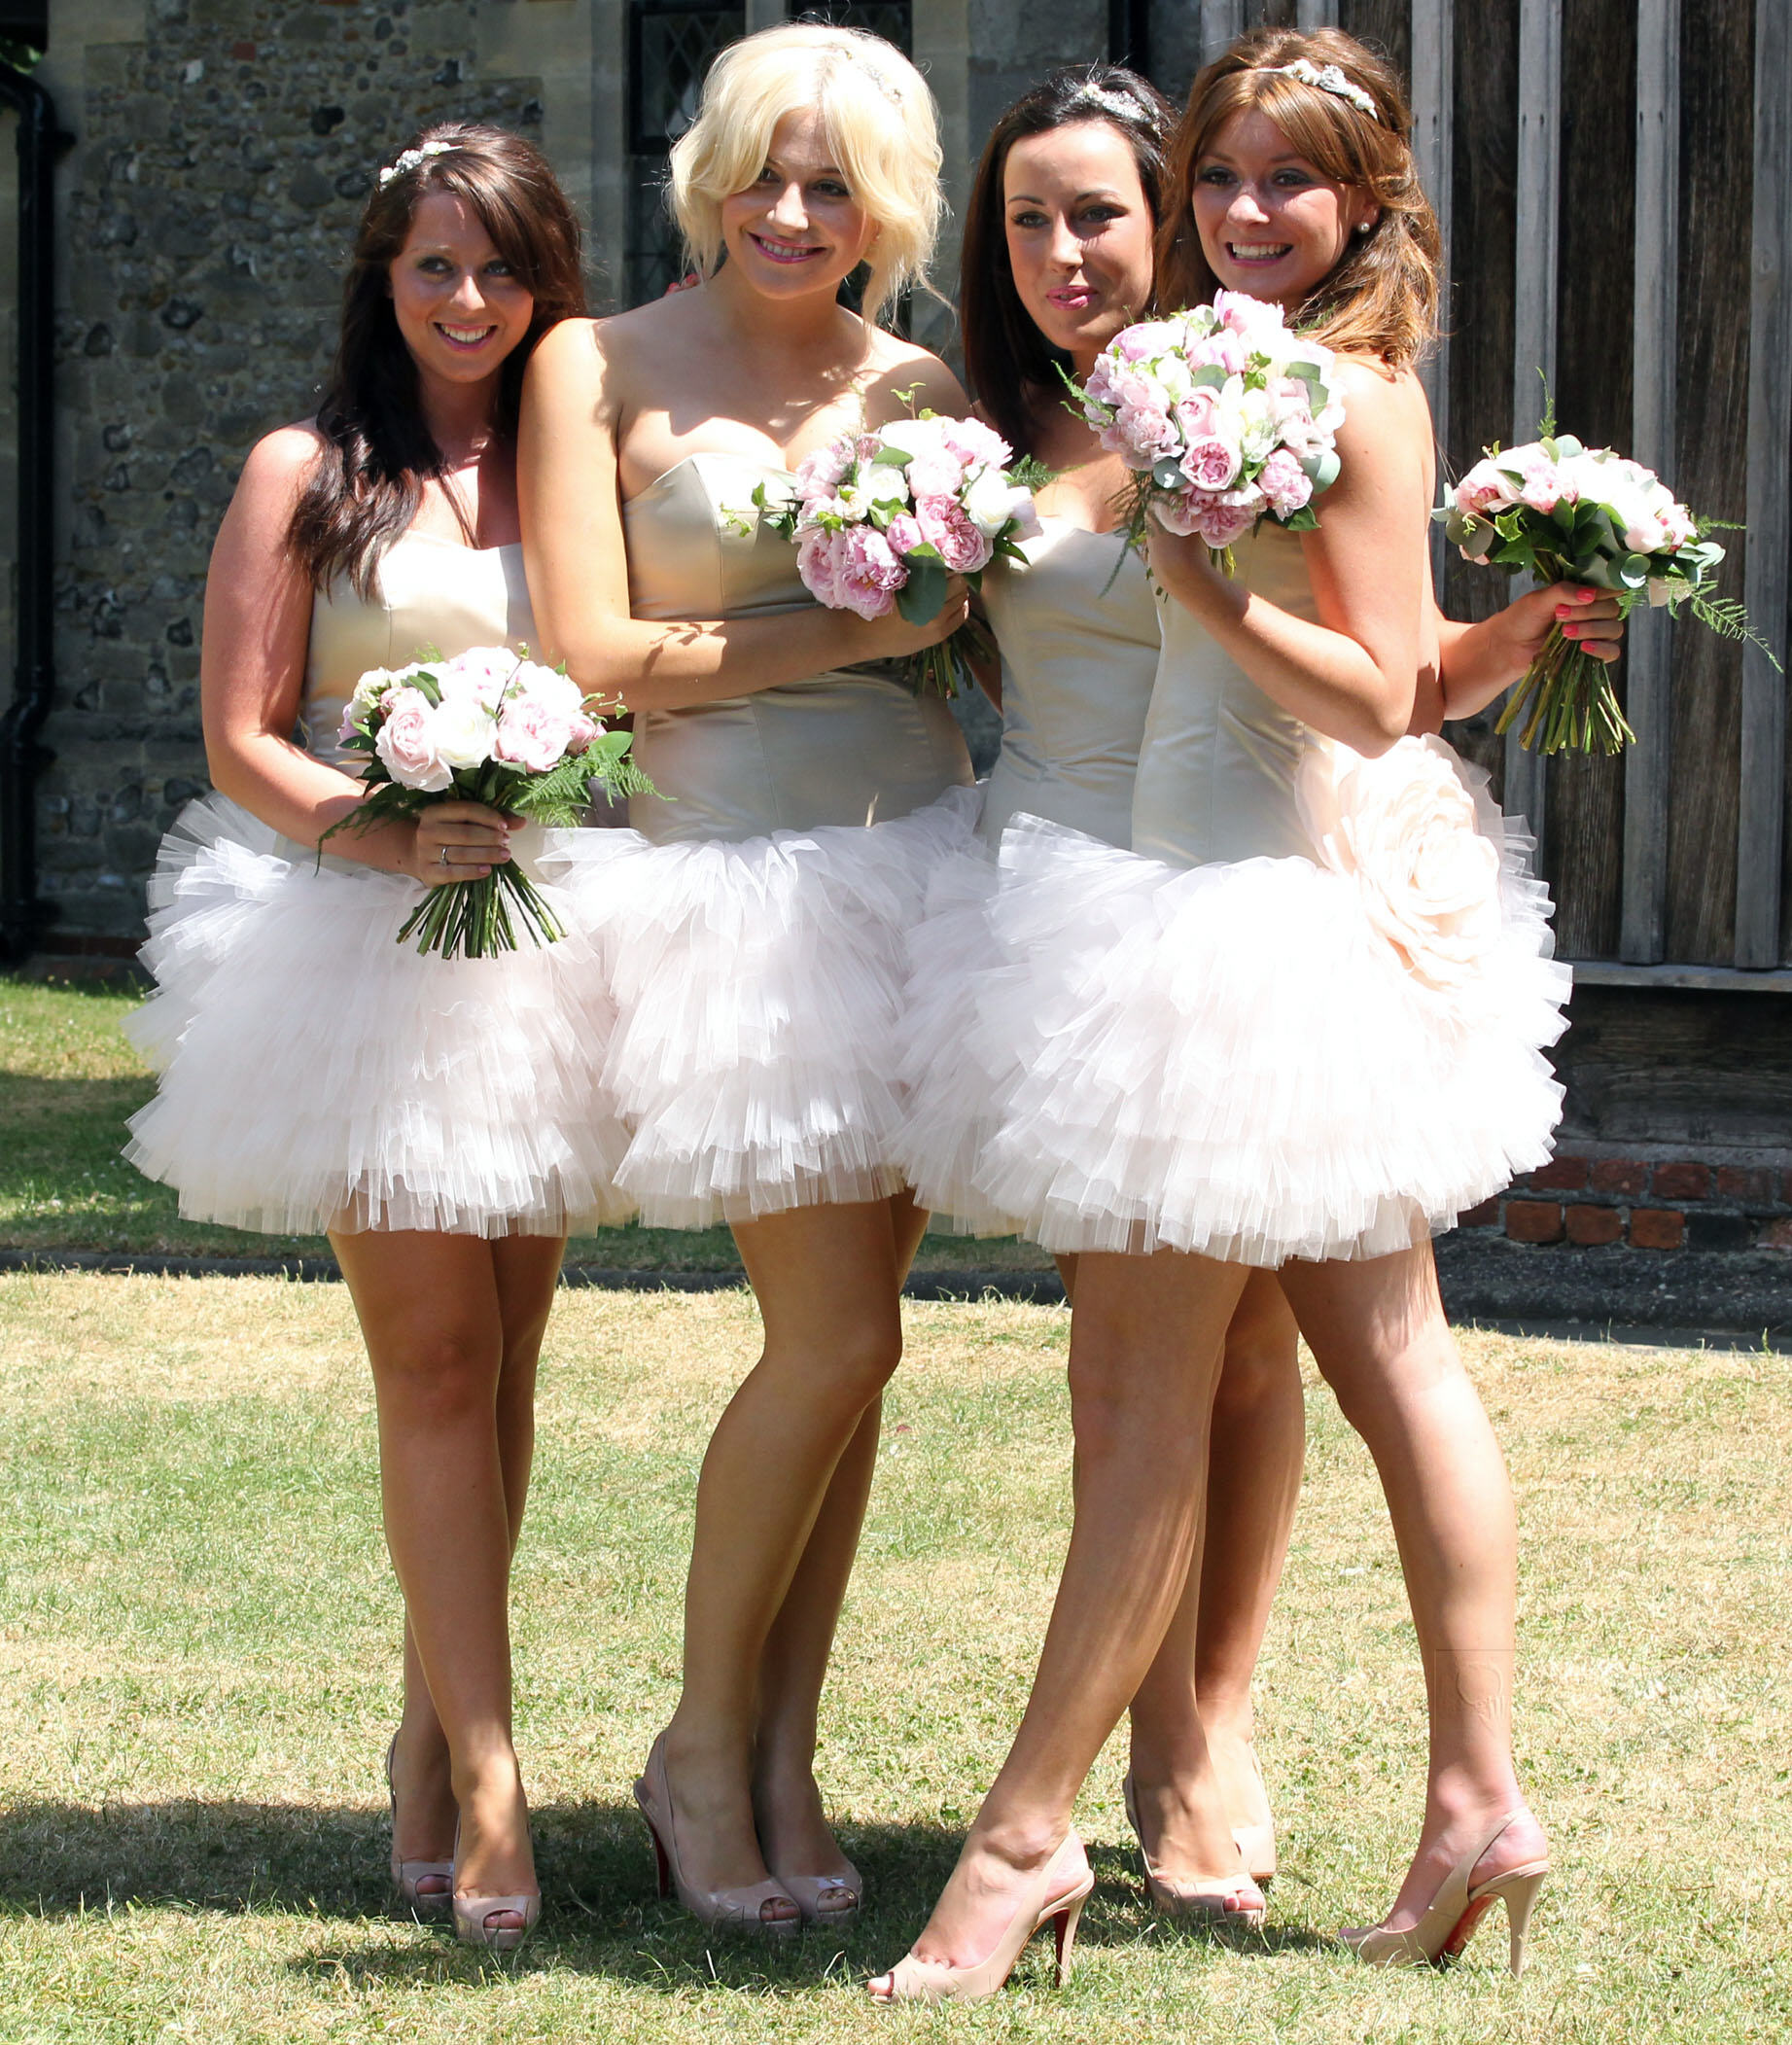 Pixie lott bridesmaid dress image collections braidsmaid dress pixie lott bridesmaid dress images braidsmaid dress cocktail pixie lott bridesmaid dress choice image braidsmaid dress ombrellifo Gallery